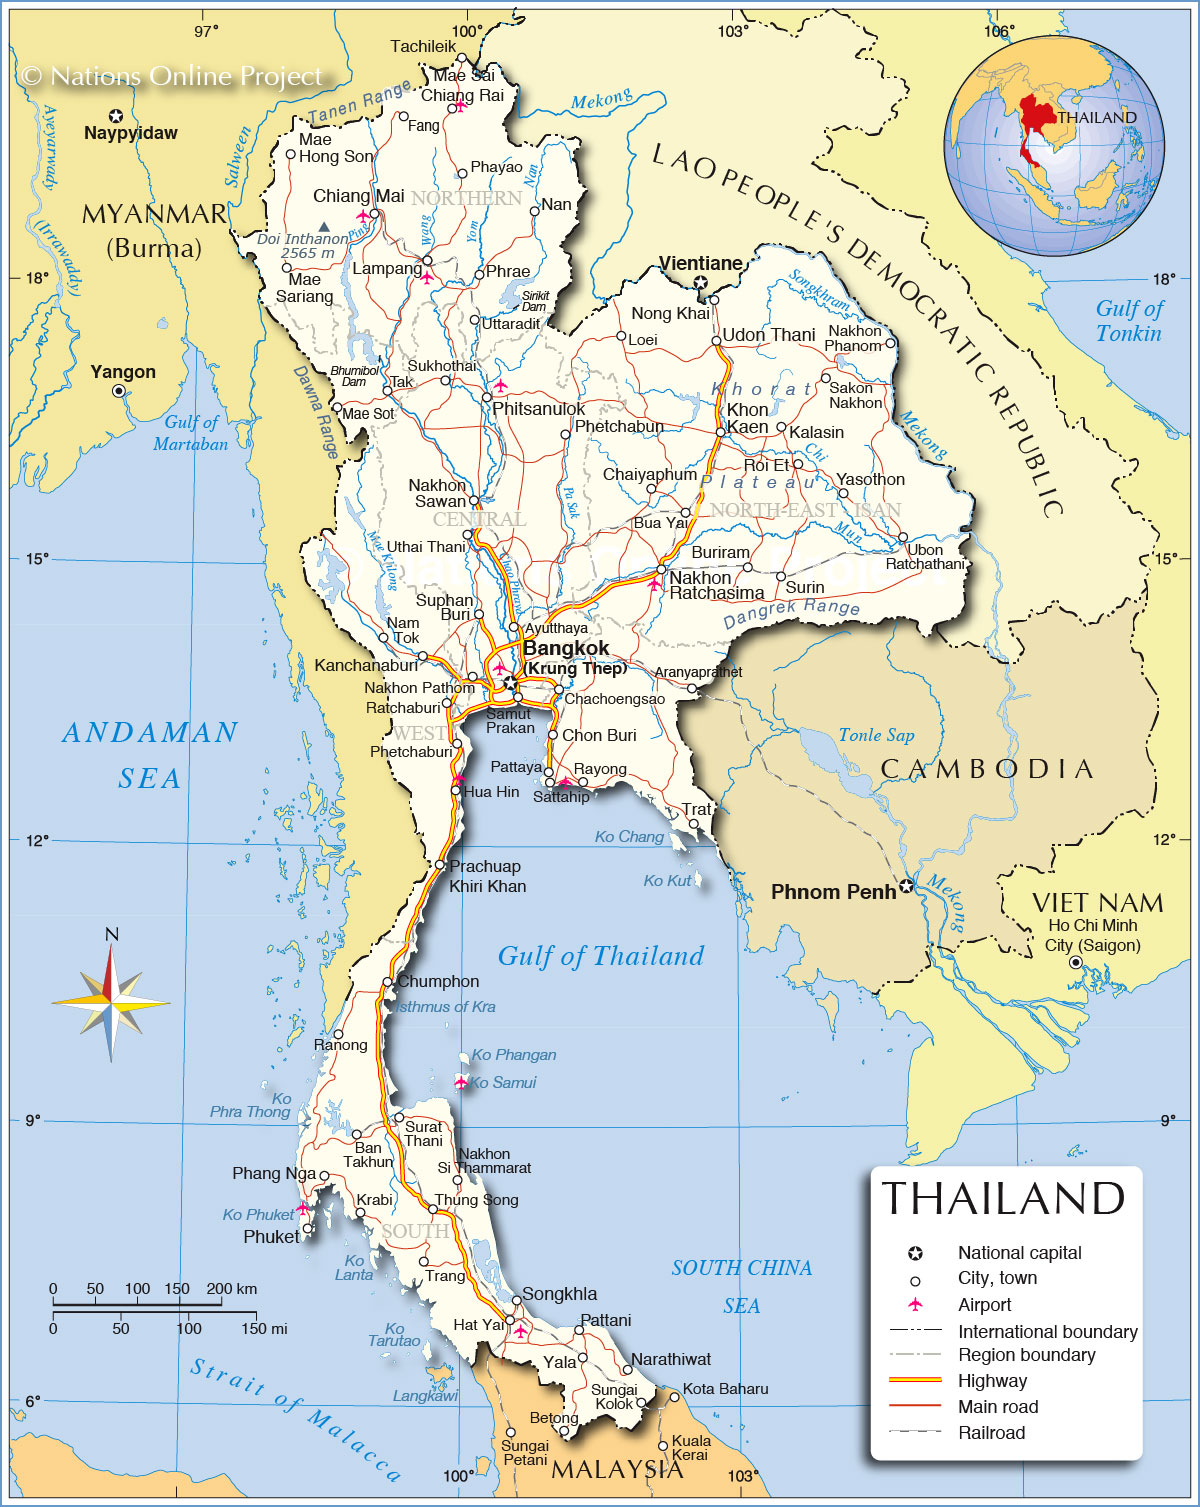 Regions Map Of Thailand Nations Online Project - Us map divided into 4 regions